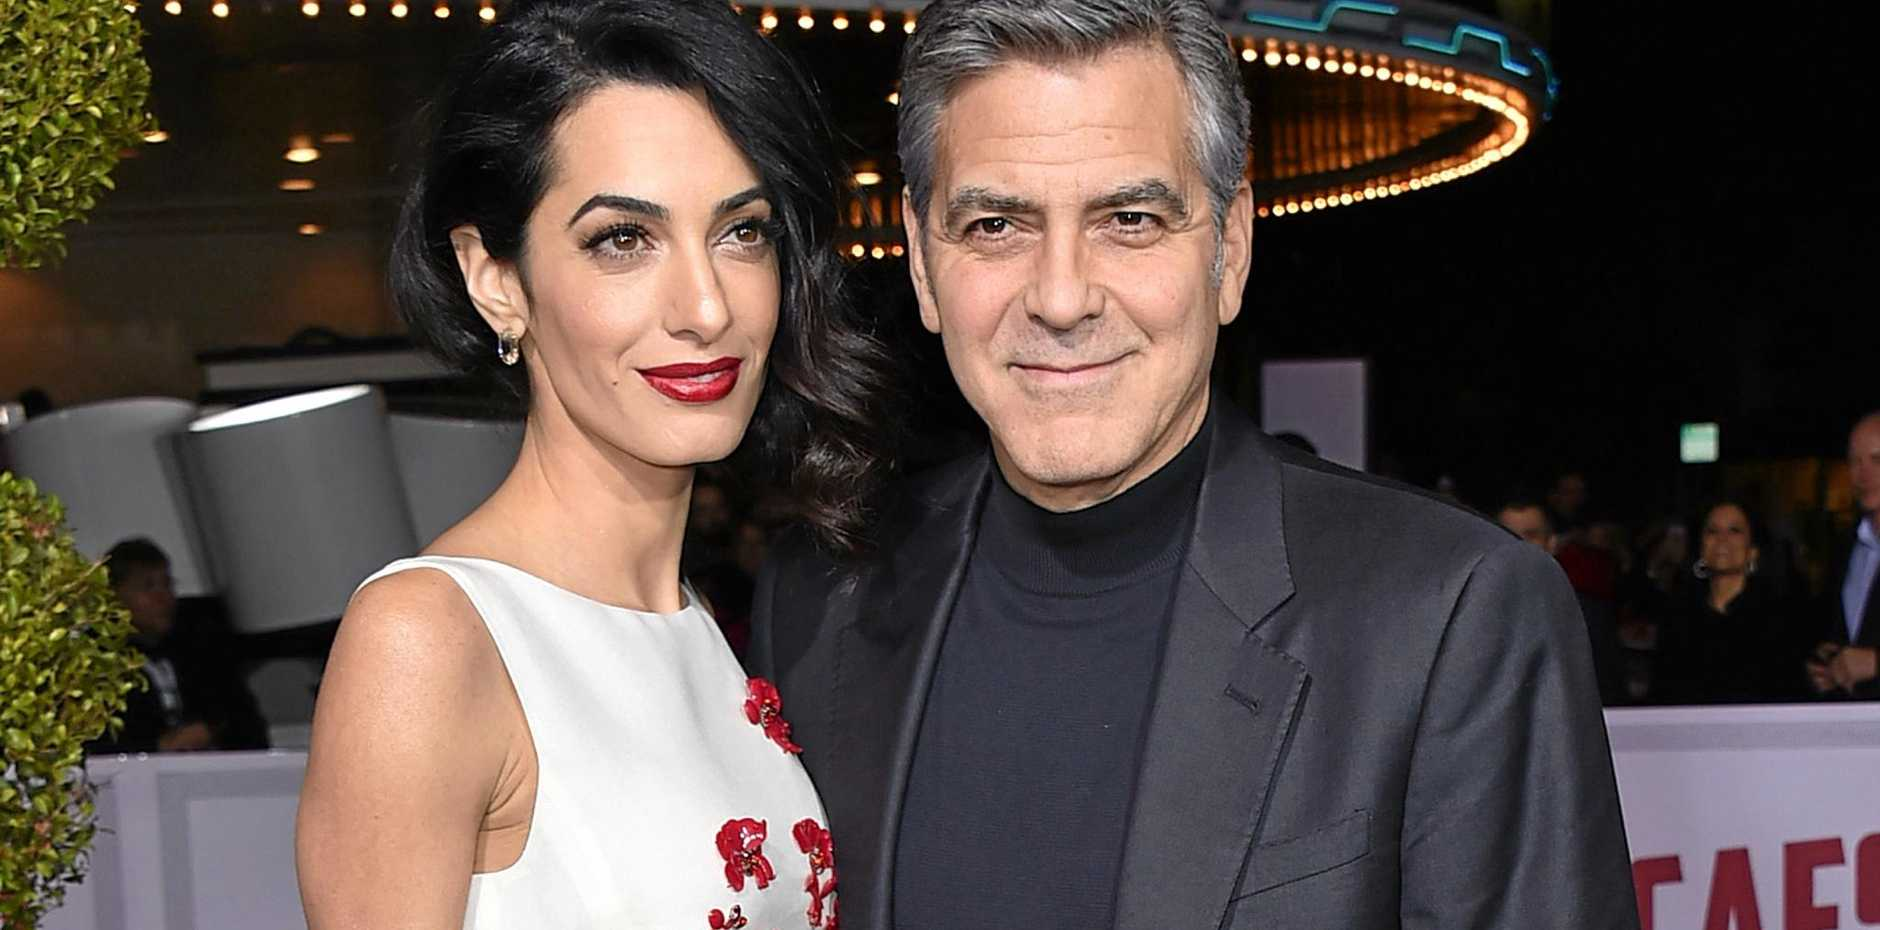 Amal Clooney, left, and George Clooney.